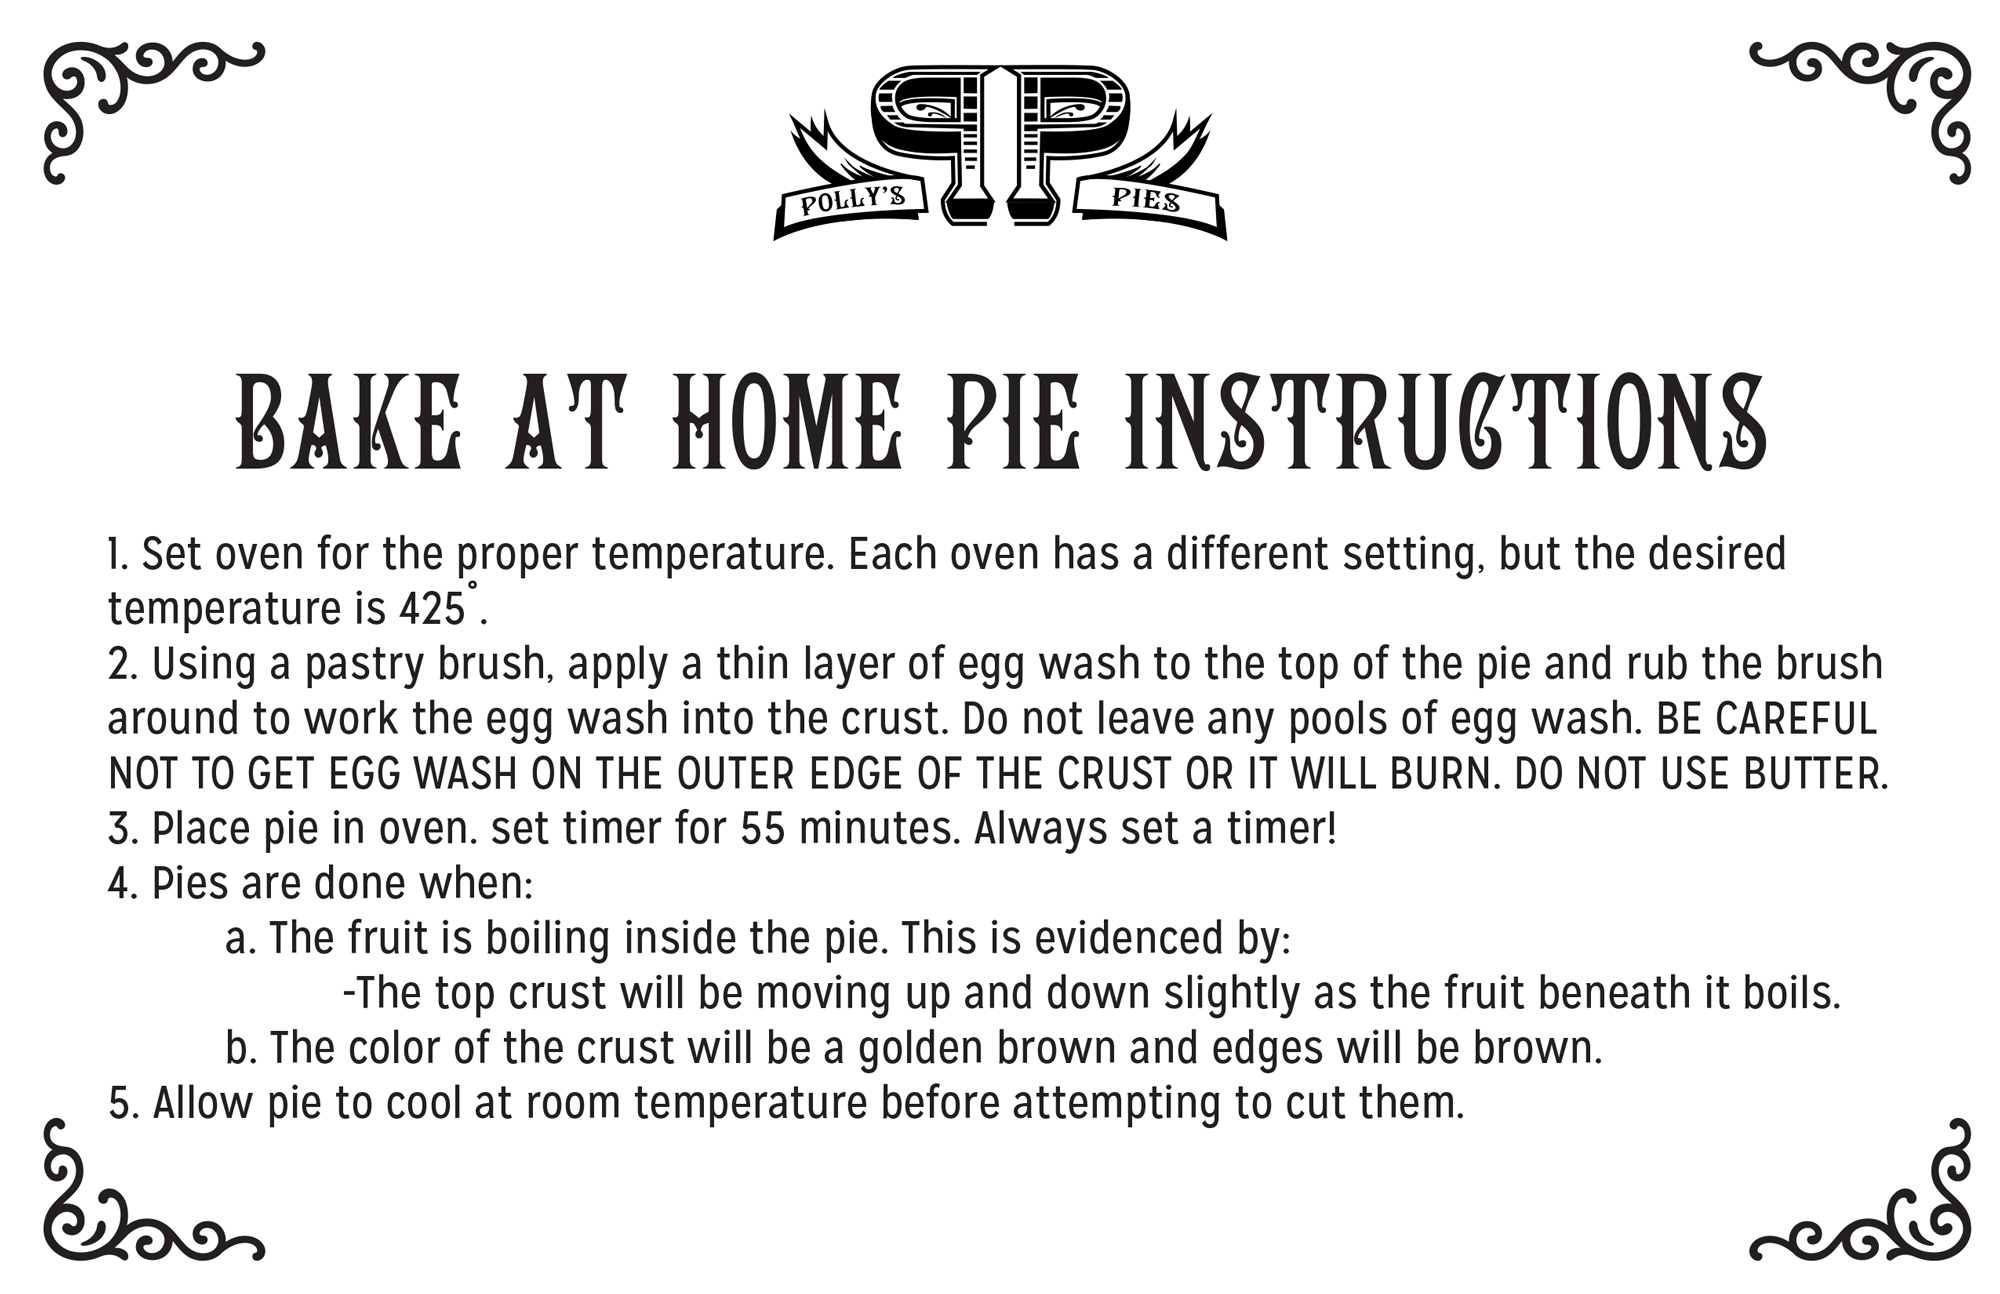 Pie bake at home instructions image